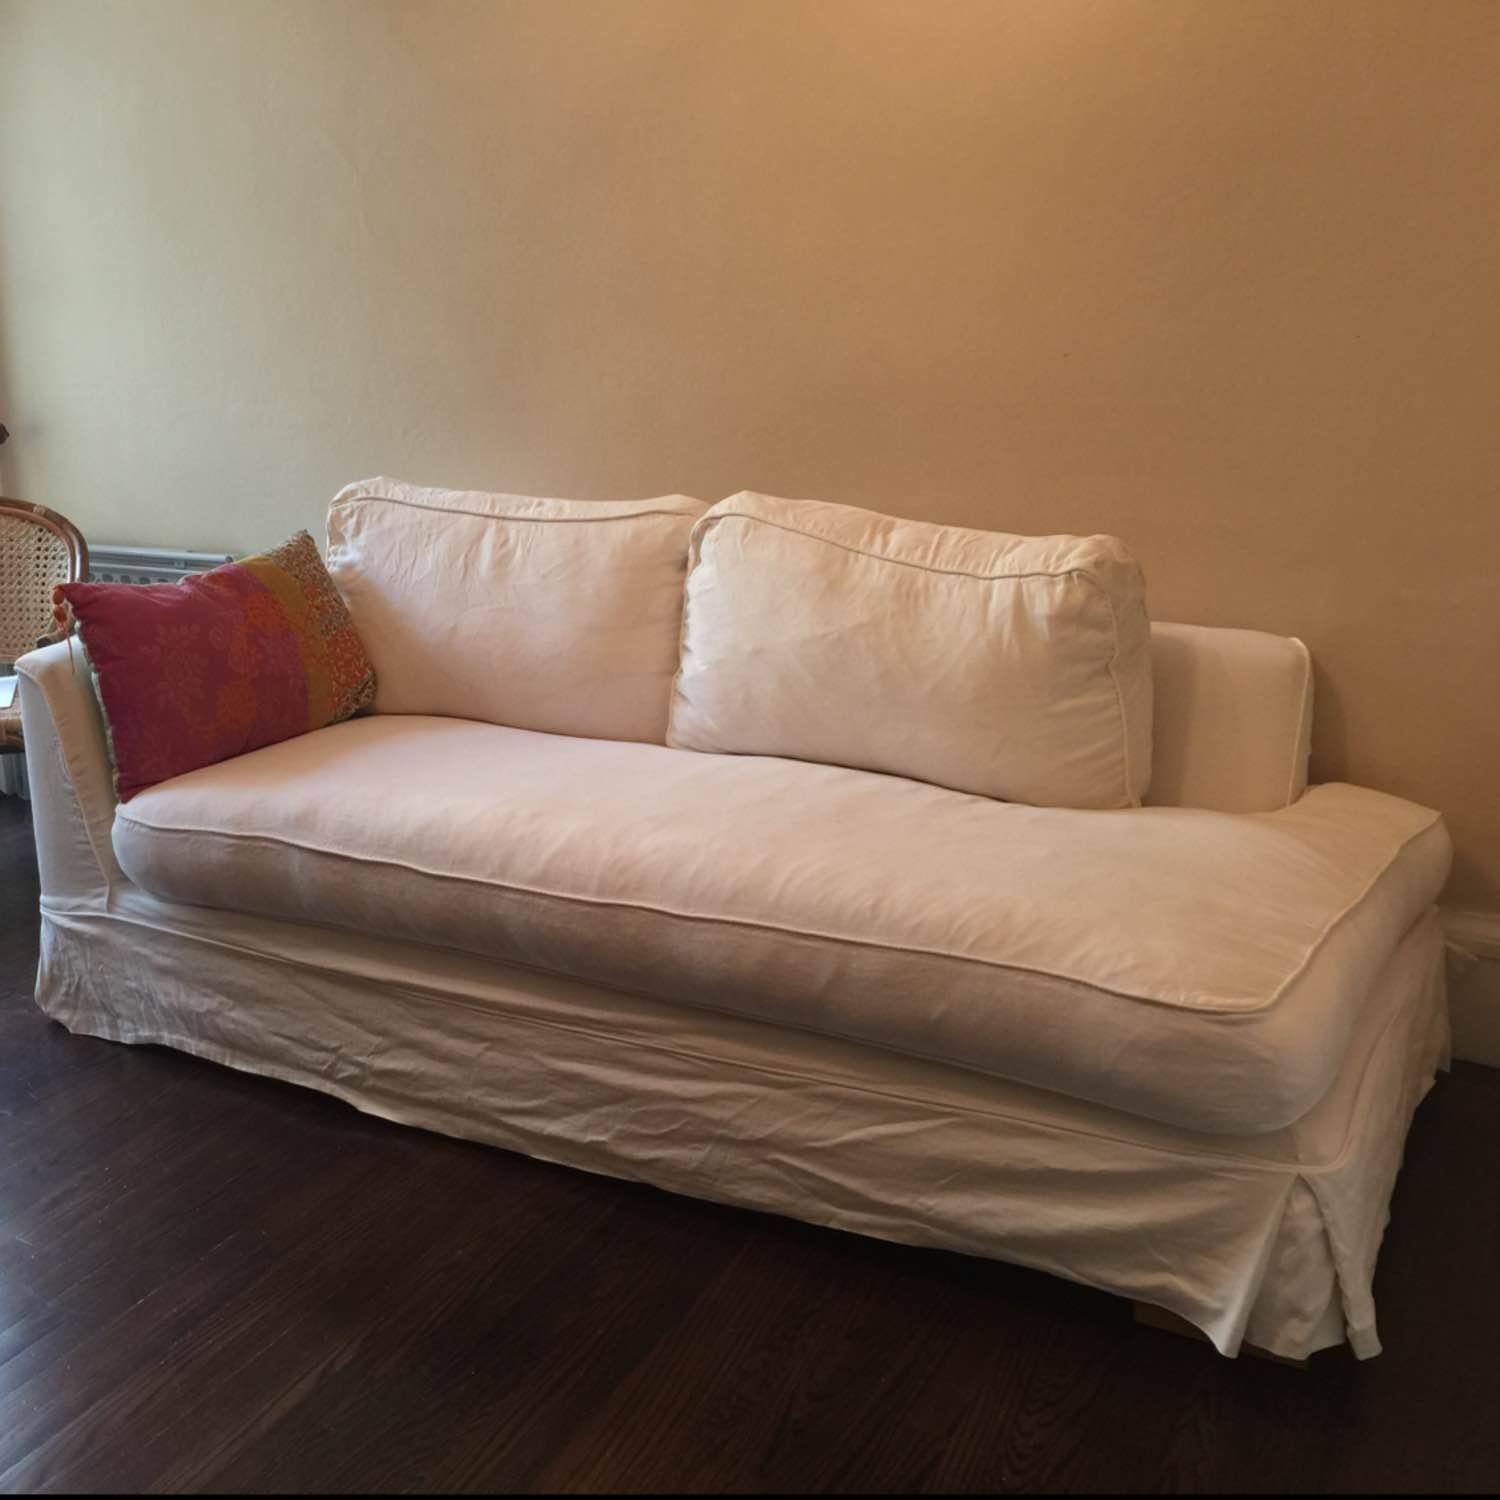 Shabby Chic Sectional Sofa With Design Gallery 31197 | Kengire With Shabby Chic Sectional Sofas (View 7 of 20)